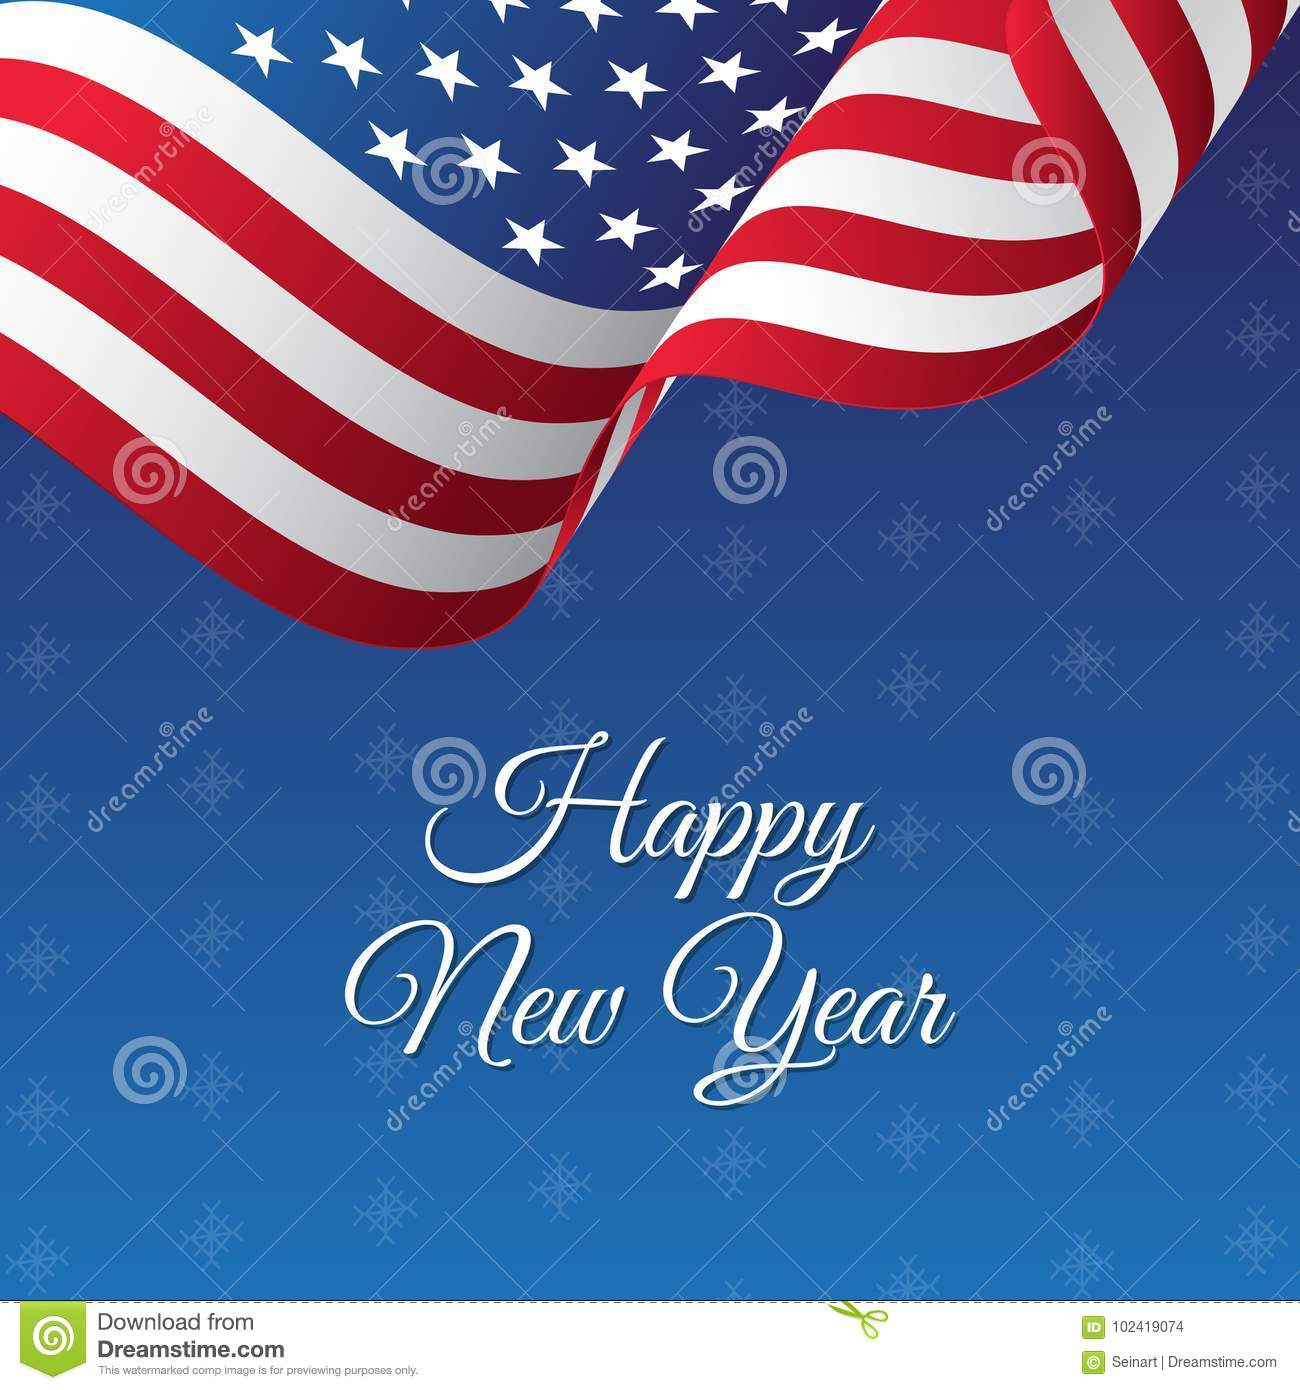 happy new year banner usa waving flag snowflakes background vector illustration